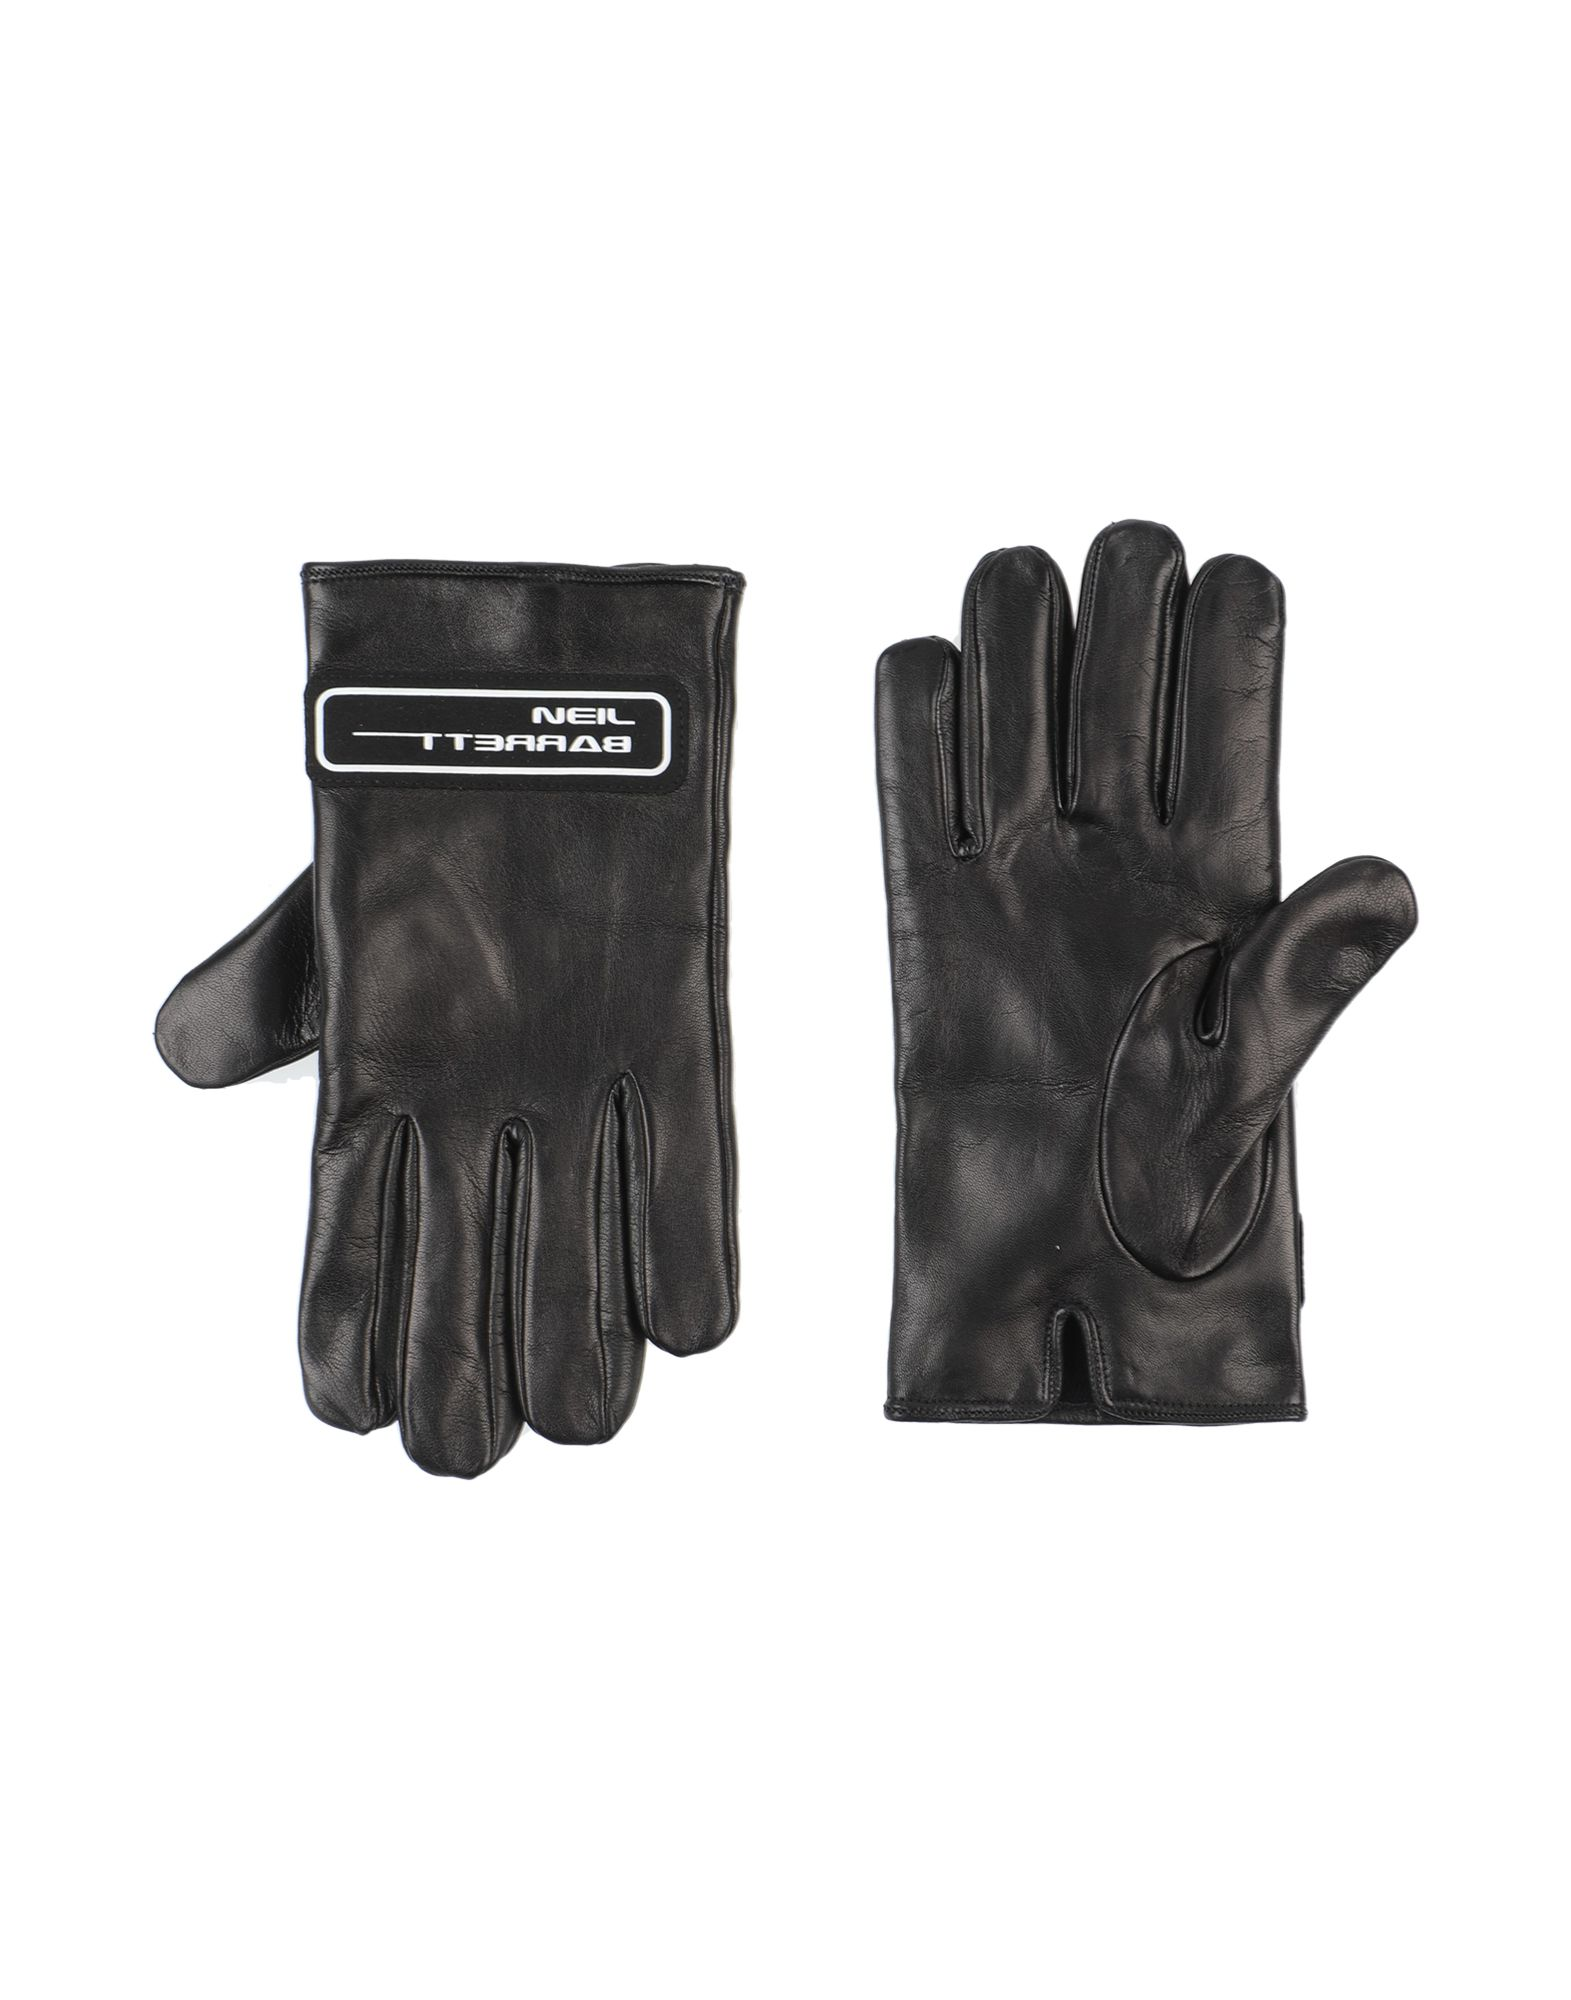 NEIL BARRETT Gloves. leather, logo, solid color, fully lined, contains non-textile parts of animal origin. Soft Leather